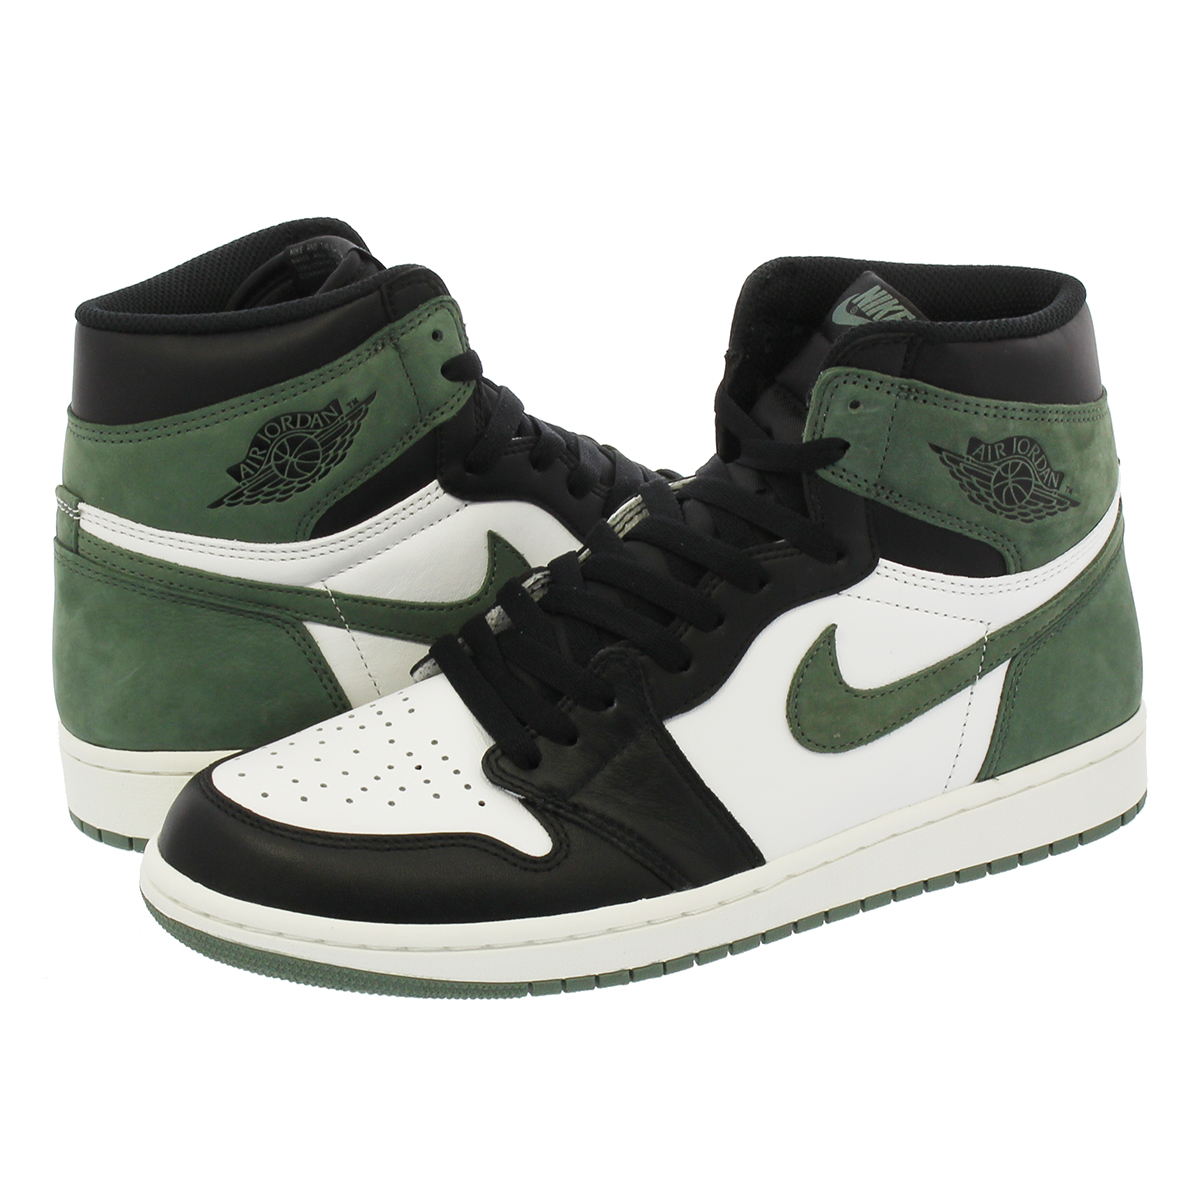 7491e569c58 NIKE AIR JORDAN 1 RETRO HIGH OG Nike Air Jordan 1 nostalgic high OG WHITE BLACK CLAY  GREEN